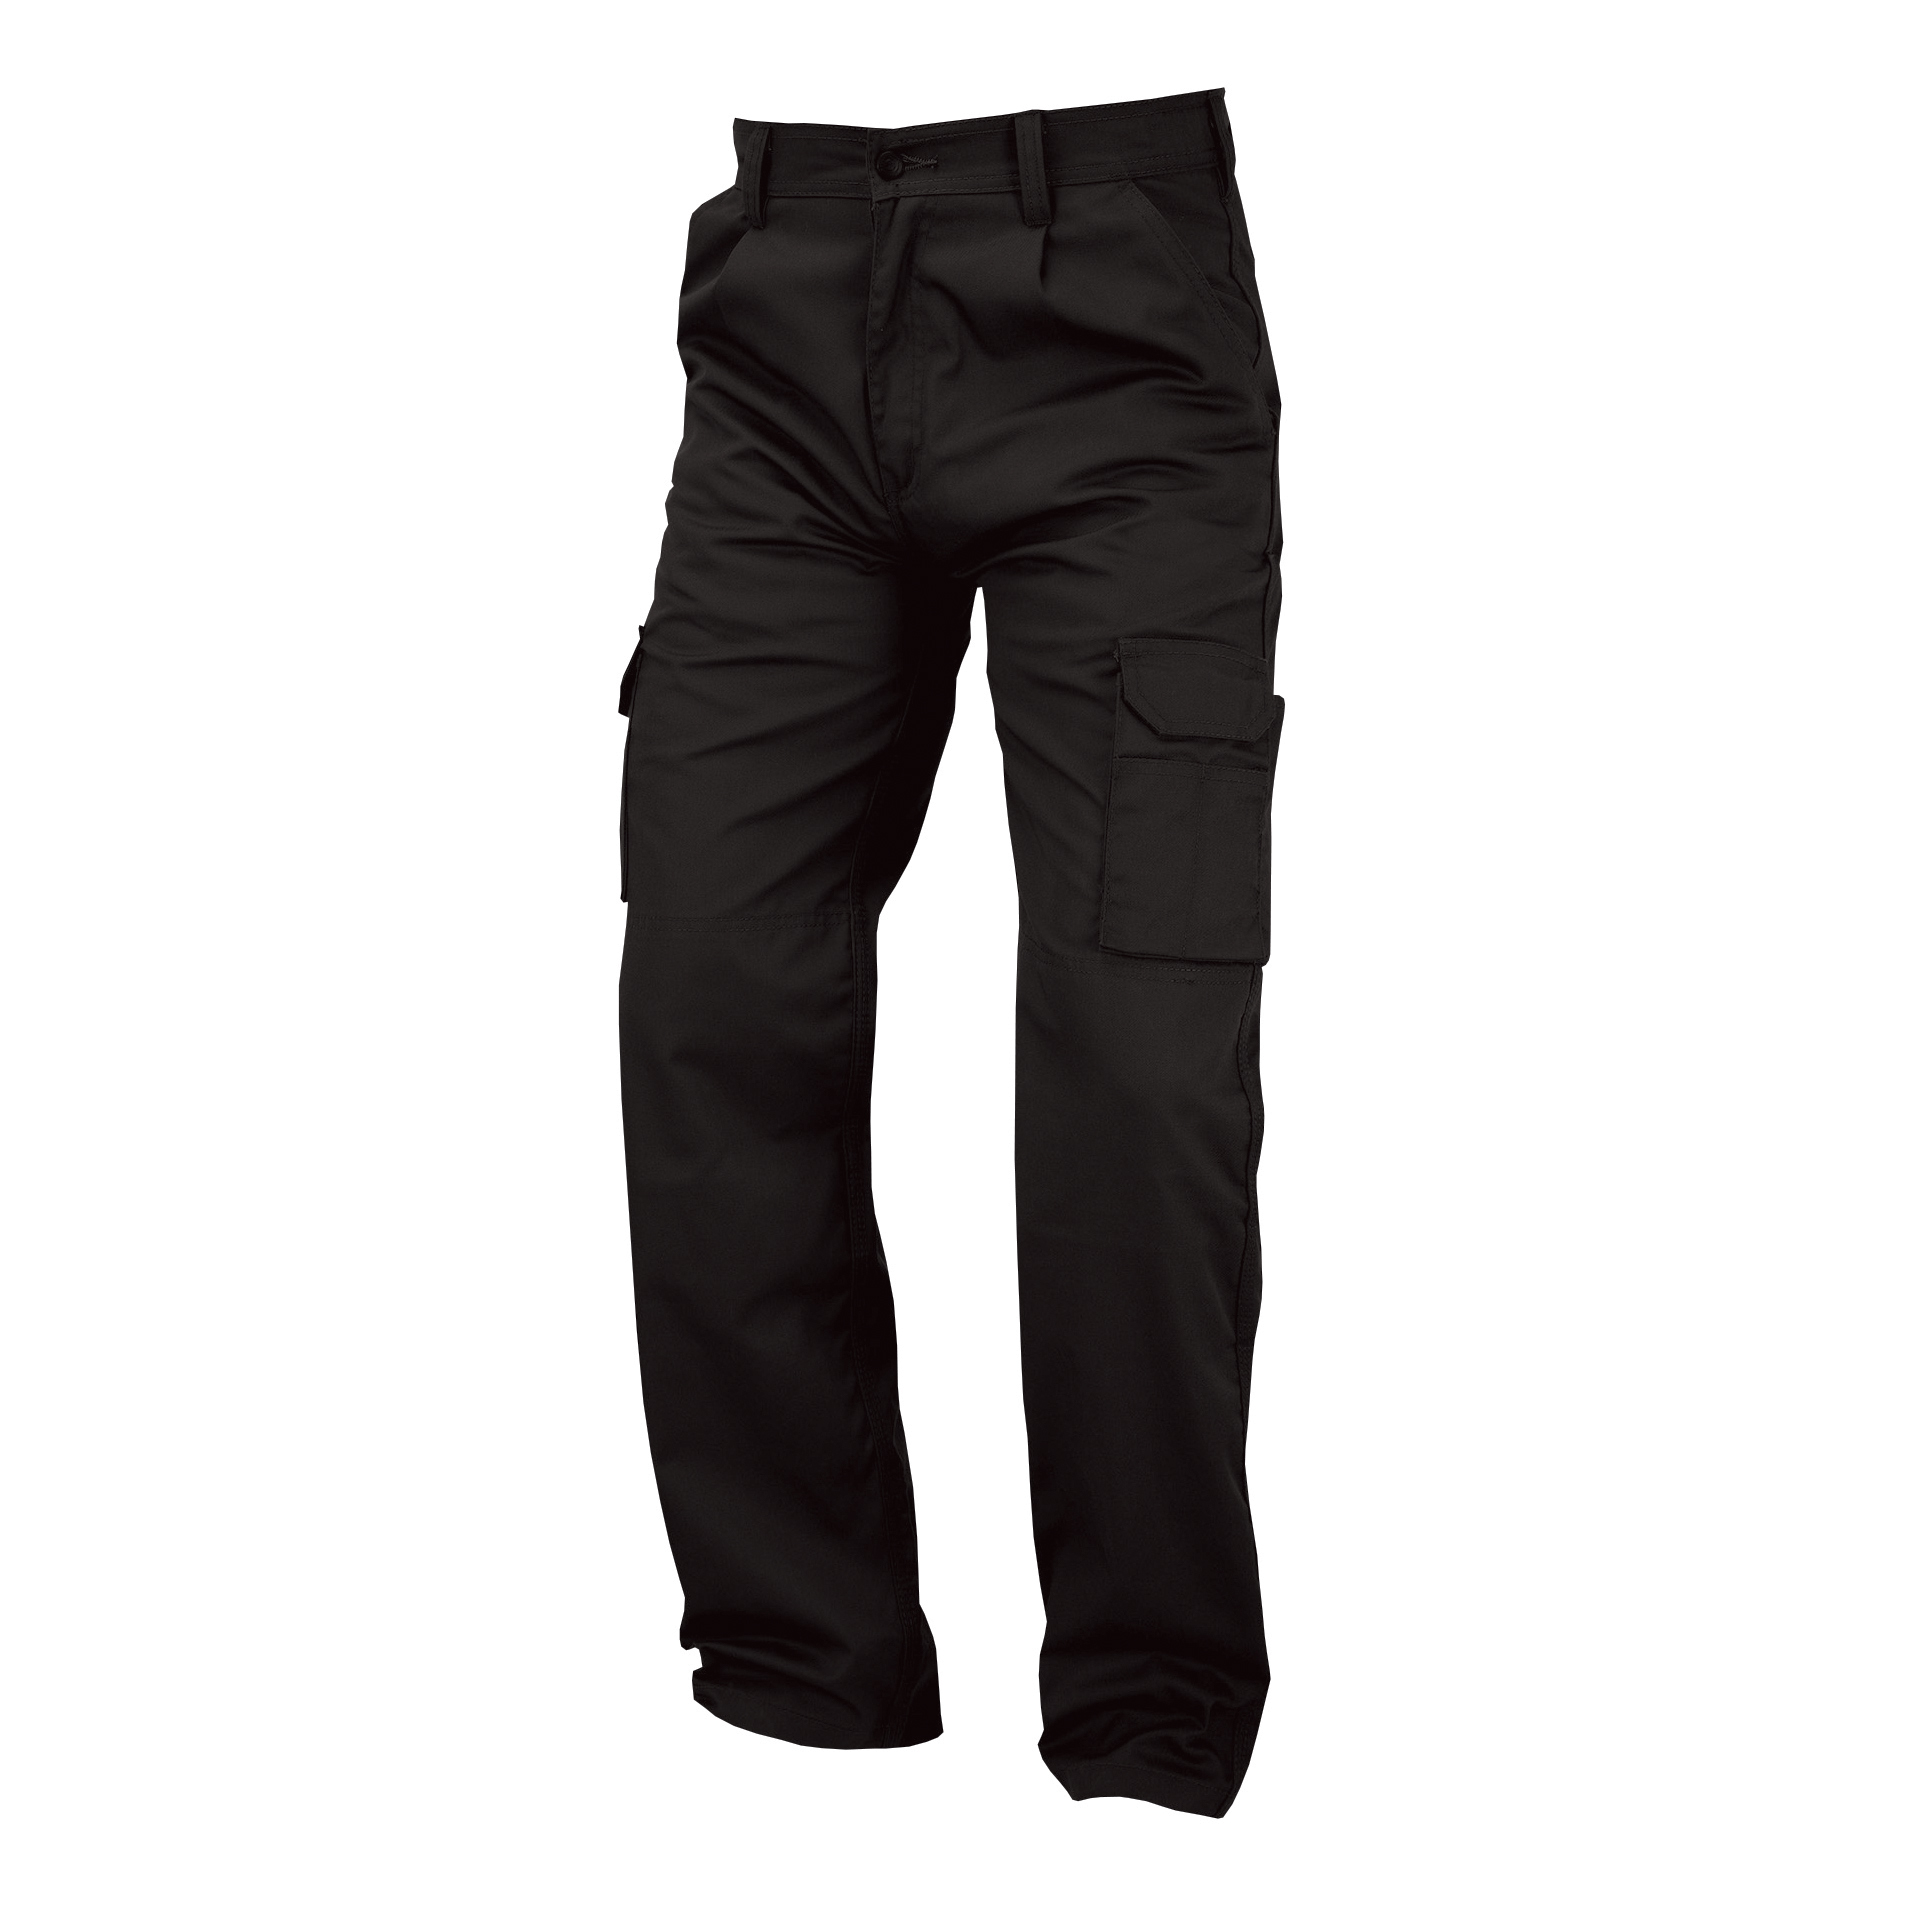 Combat Trouser Multi-functional Waist 28in Leg 32in Black Ref PCTHWBL28 *Approx 3 Day Leadtime*